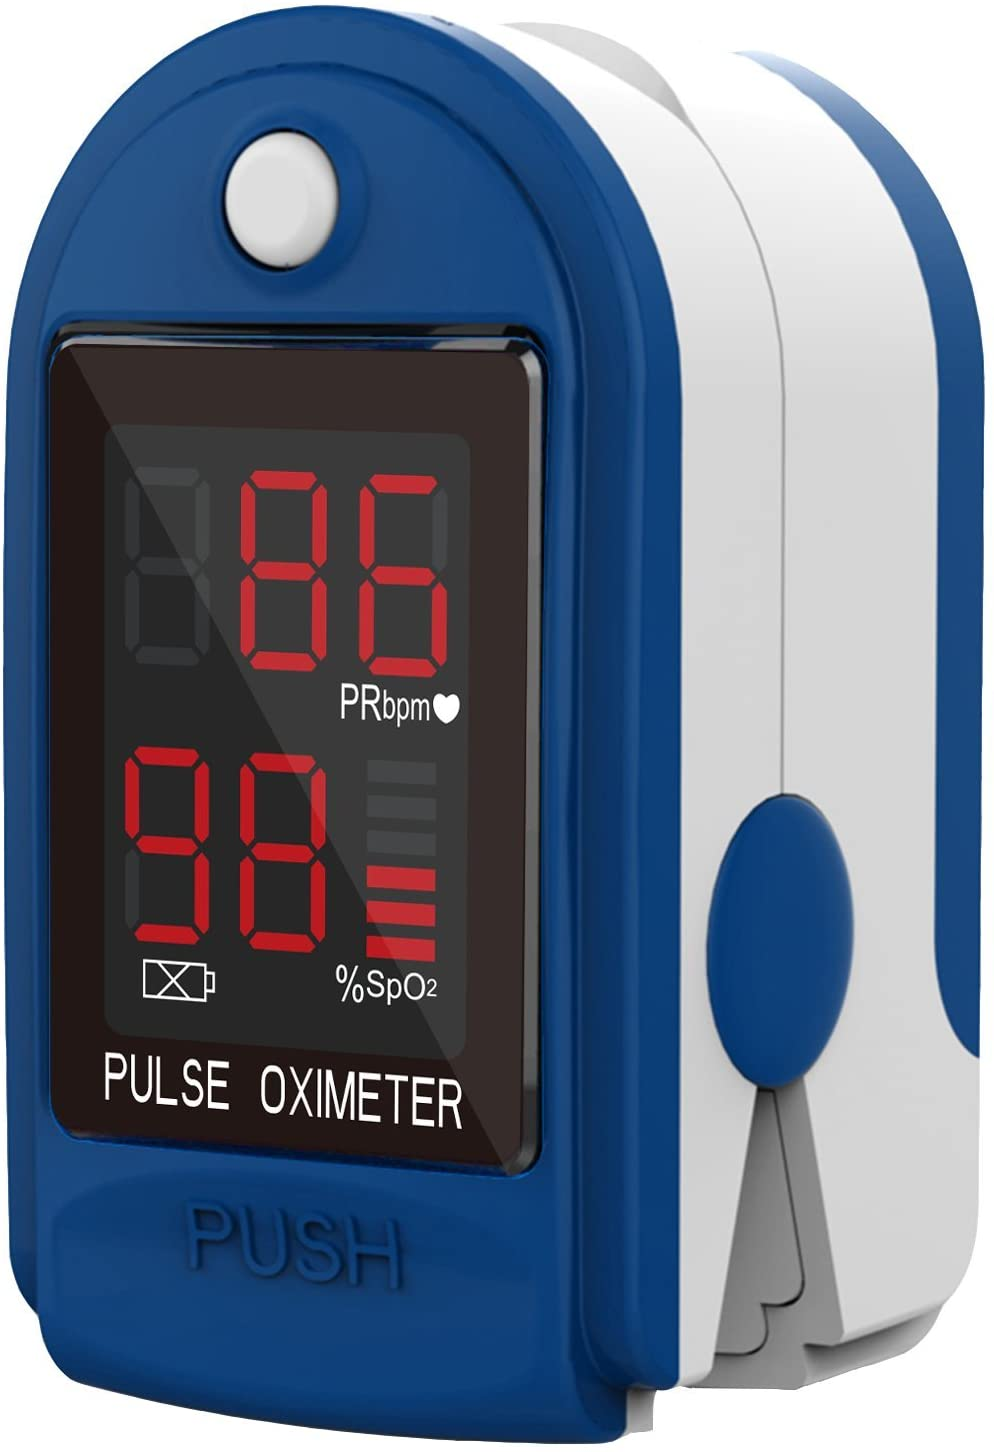 Pulse Rate Oximeter with Bar Graph LED Display <span style='color:#1ea61e;'> - Available to Ship</span>